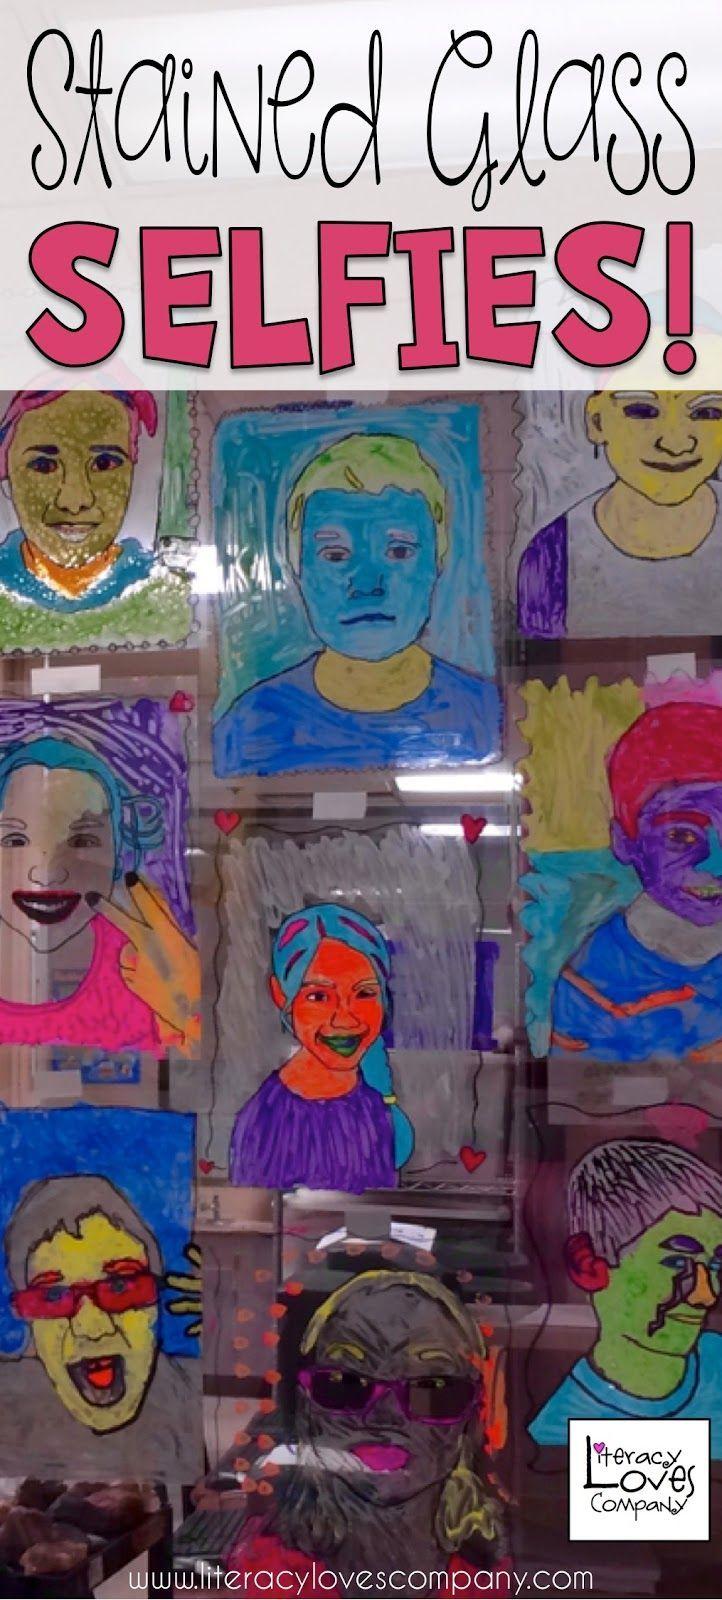 Add some color and fun to your classroom with Stained Glass Selfies. This blog post takes you step by step through the art project with full color photos.